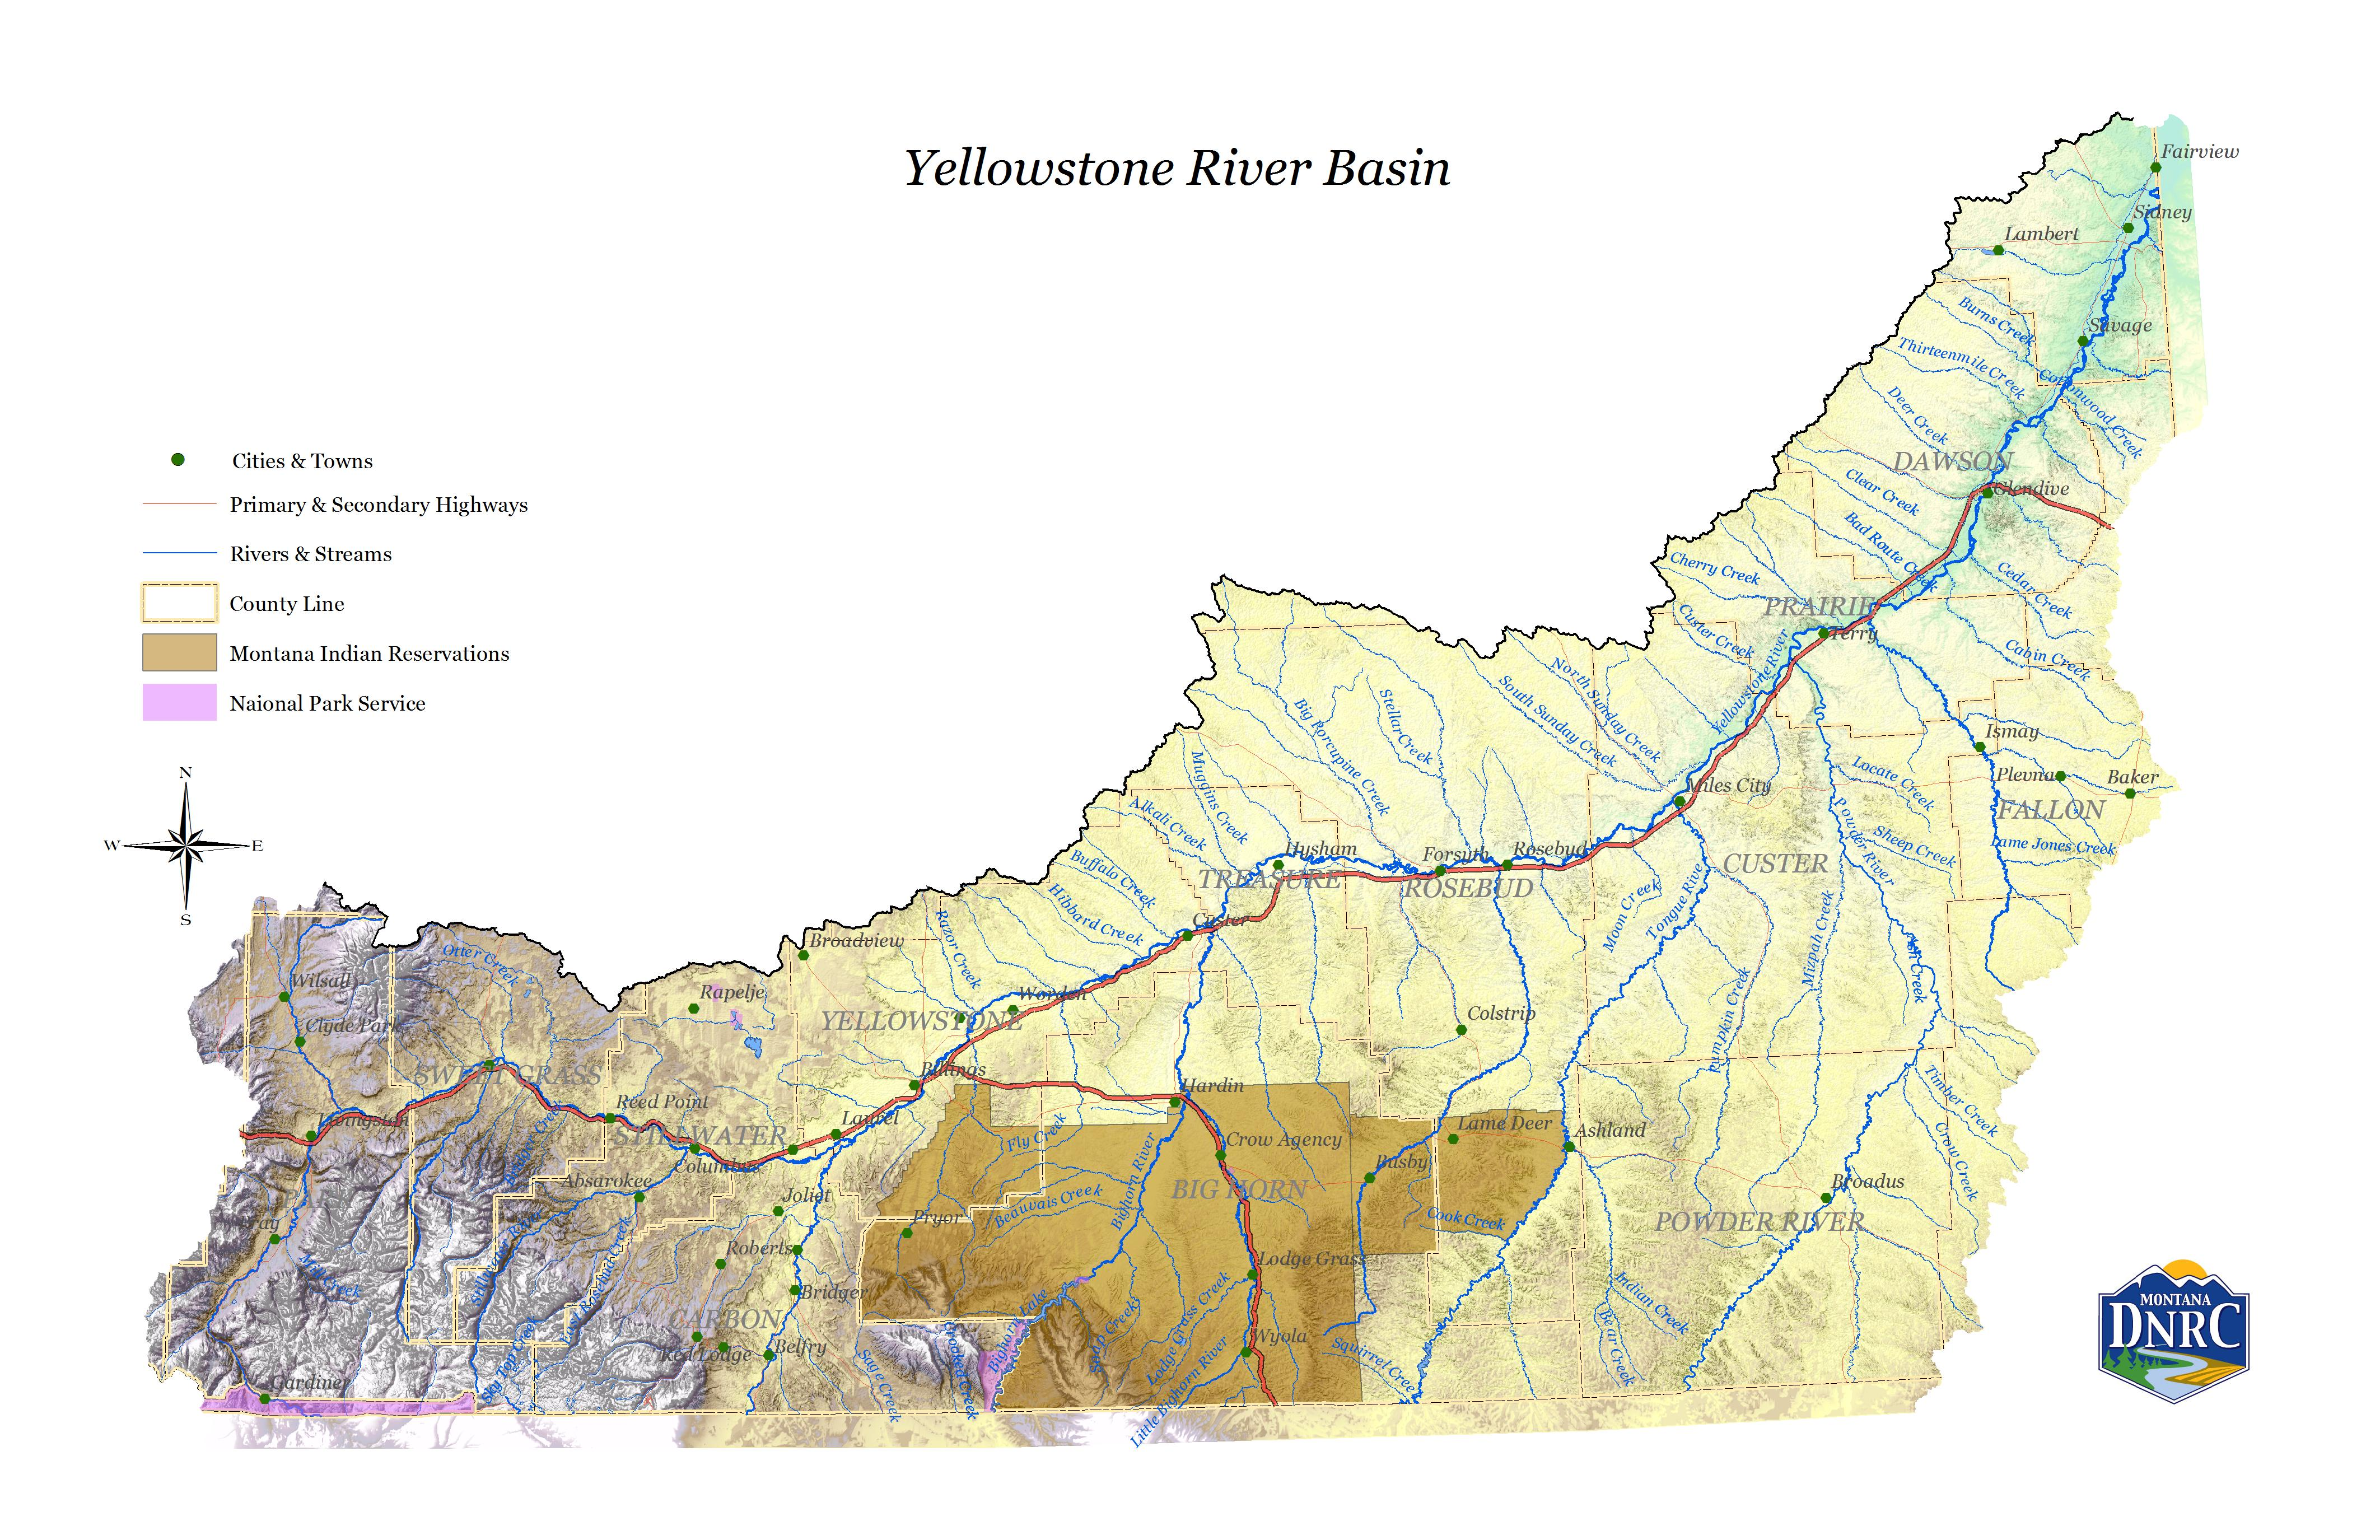 Montana DNRC on platte river map, red river, tennessee river, bighorn river map, bitterroot mountains map, montana map, yellowstone caldera, old faithful geyser, cascade range map, san joaquin river map, illinois river, snake river map, arkansas river, penobscot river map, yellowstone national park, arkansas river map, grand canyon of the yellowstone, mississippi river map, ohio river, gallatin river map, platte river, great falls, tennessee river map, columbia river map, wabash river, st. croix river map, hudson river map, minnesota river map, marias river map, grand prismatic spring, missouri river, snake river, great salt lake map, glacier national park, colorado river map, green river, osage river map,